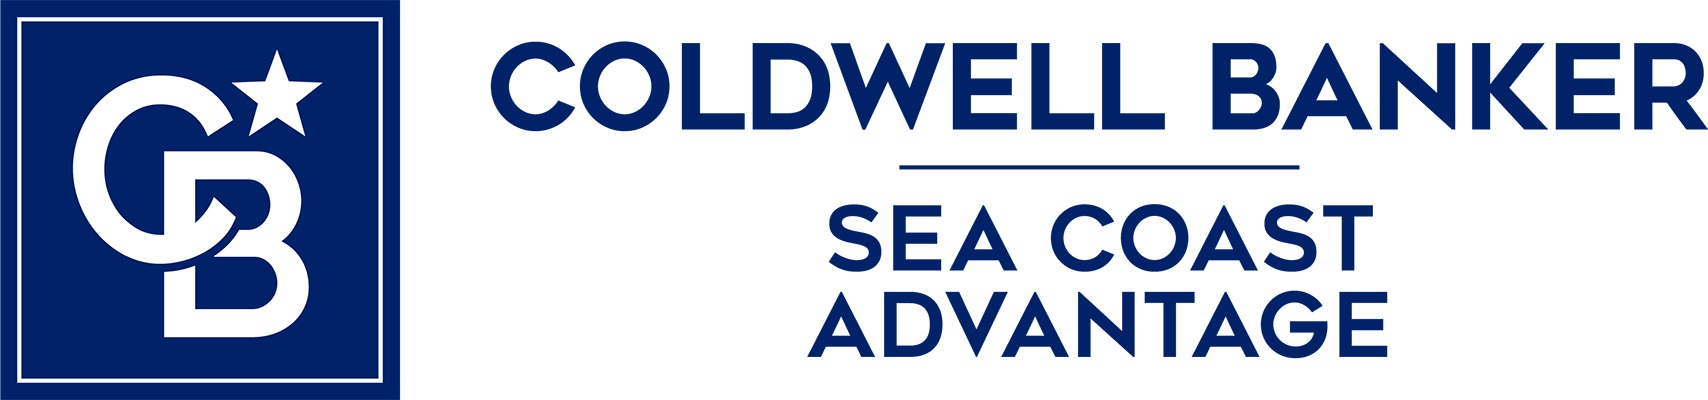 Brenda Prather - Coldwell Banker Sea Coast Advantage Realty Logo